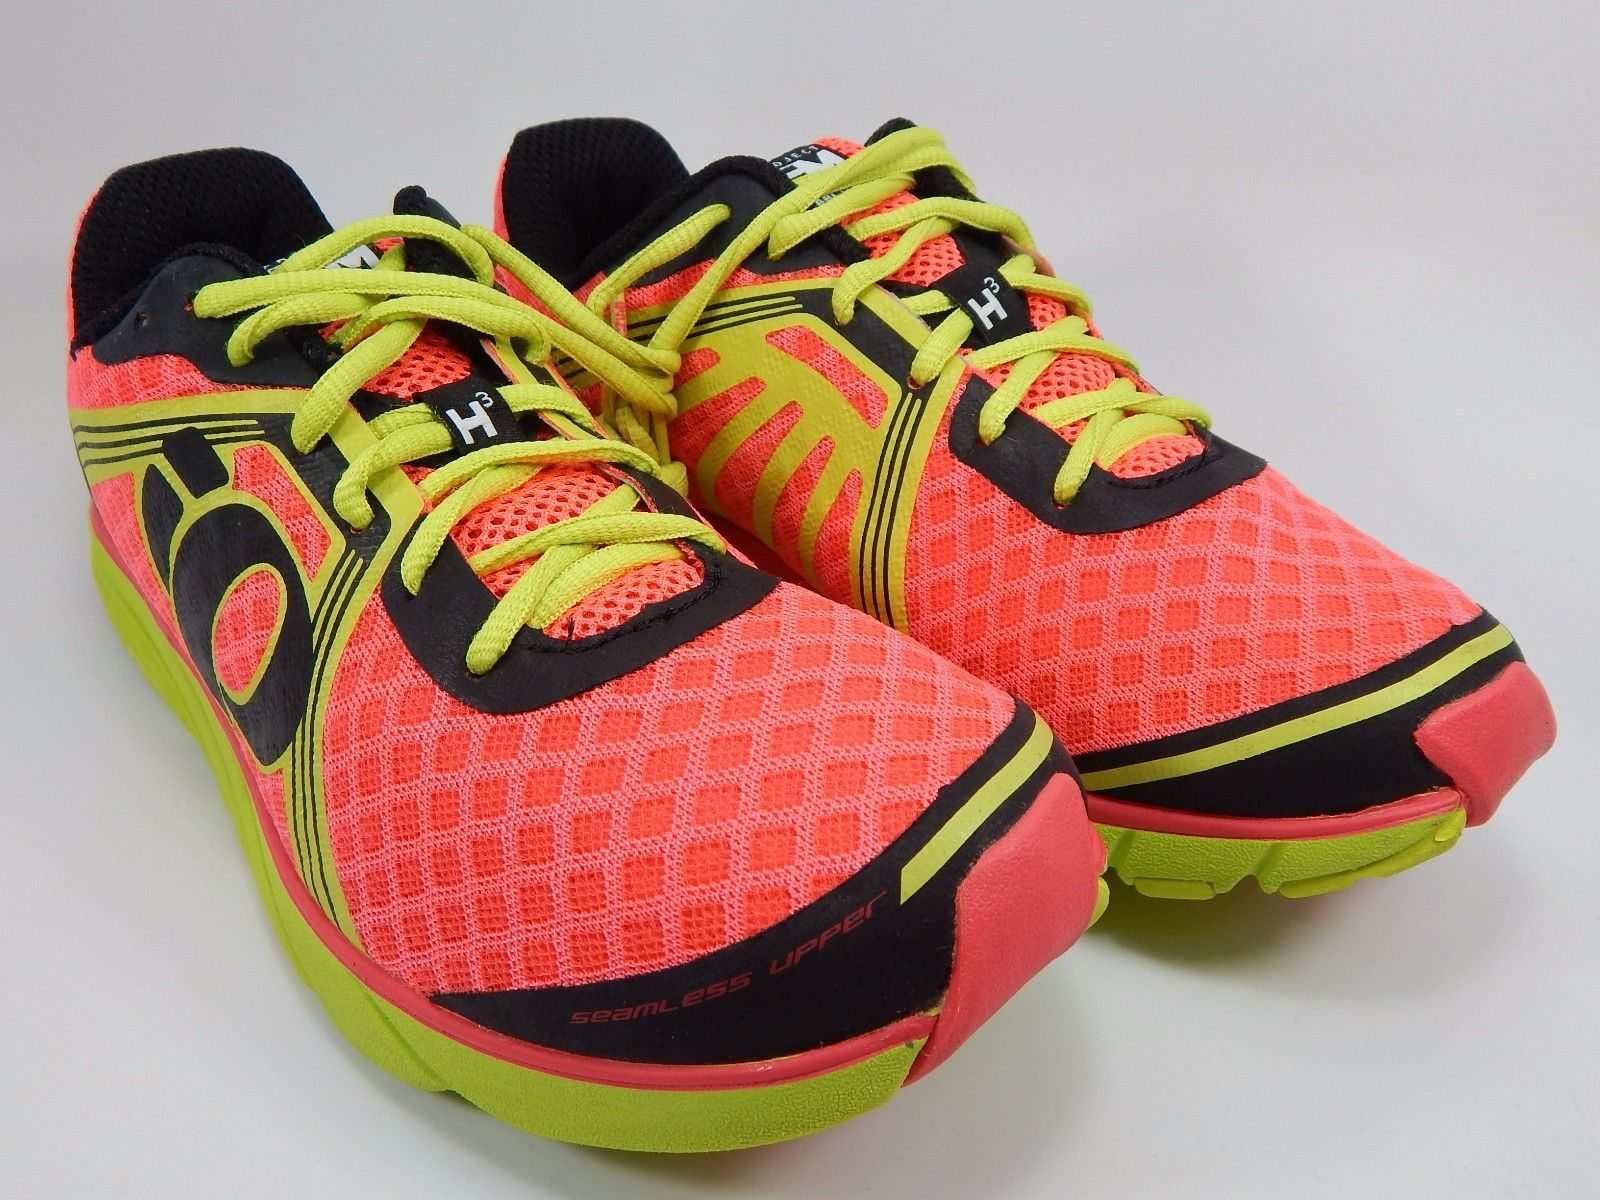 Pearl Izumi EM Road H 3 Women's Running Shoes Size US 8 M (B) EU 39 Pink Yellow